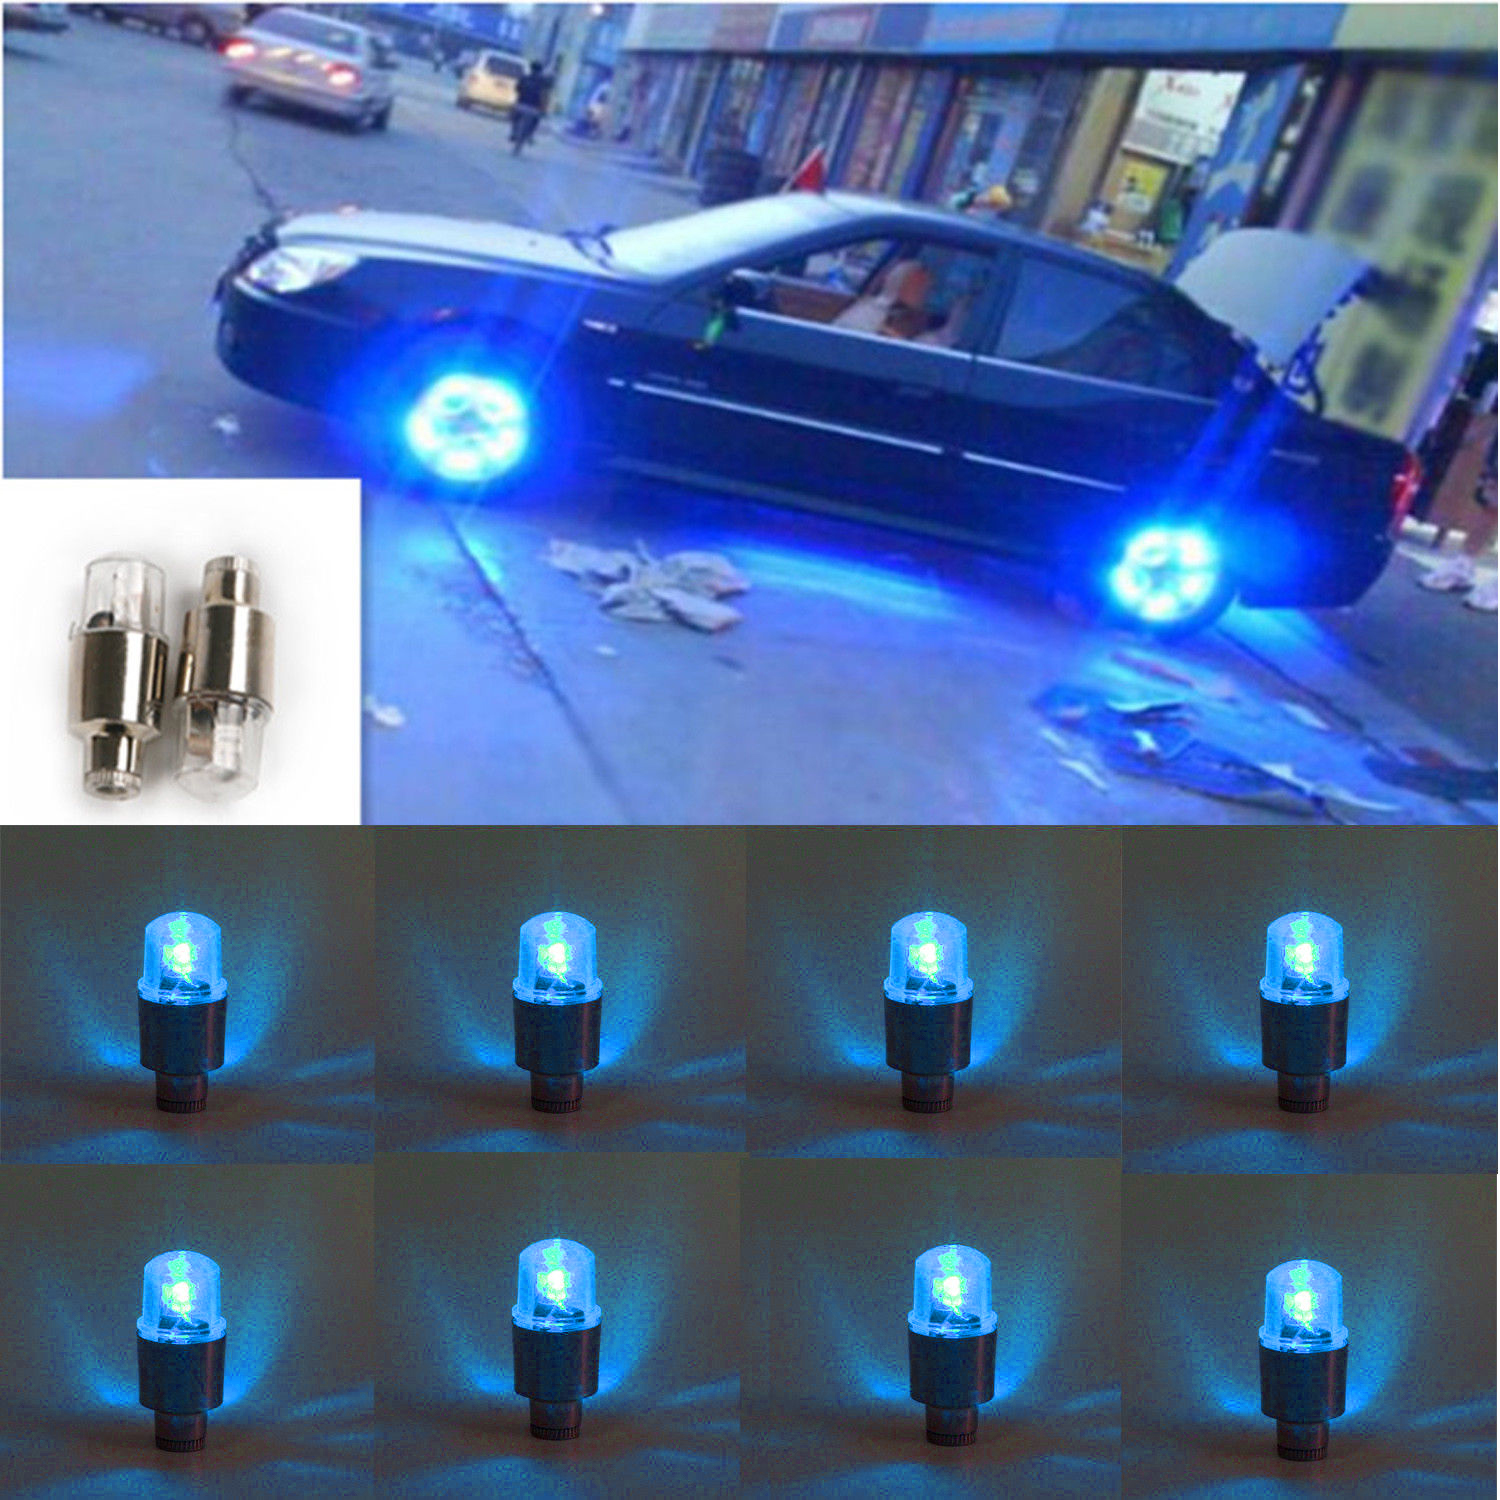 Accessories Carprie New Fashion Auto Accessories Bike Supplies Neon Blue Strobe Led Tire Valve Caps-2pc Mr Car-styling Accessories Wholesale